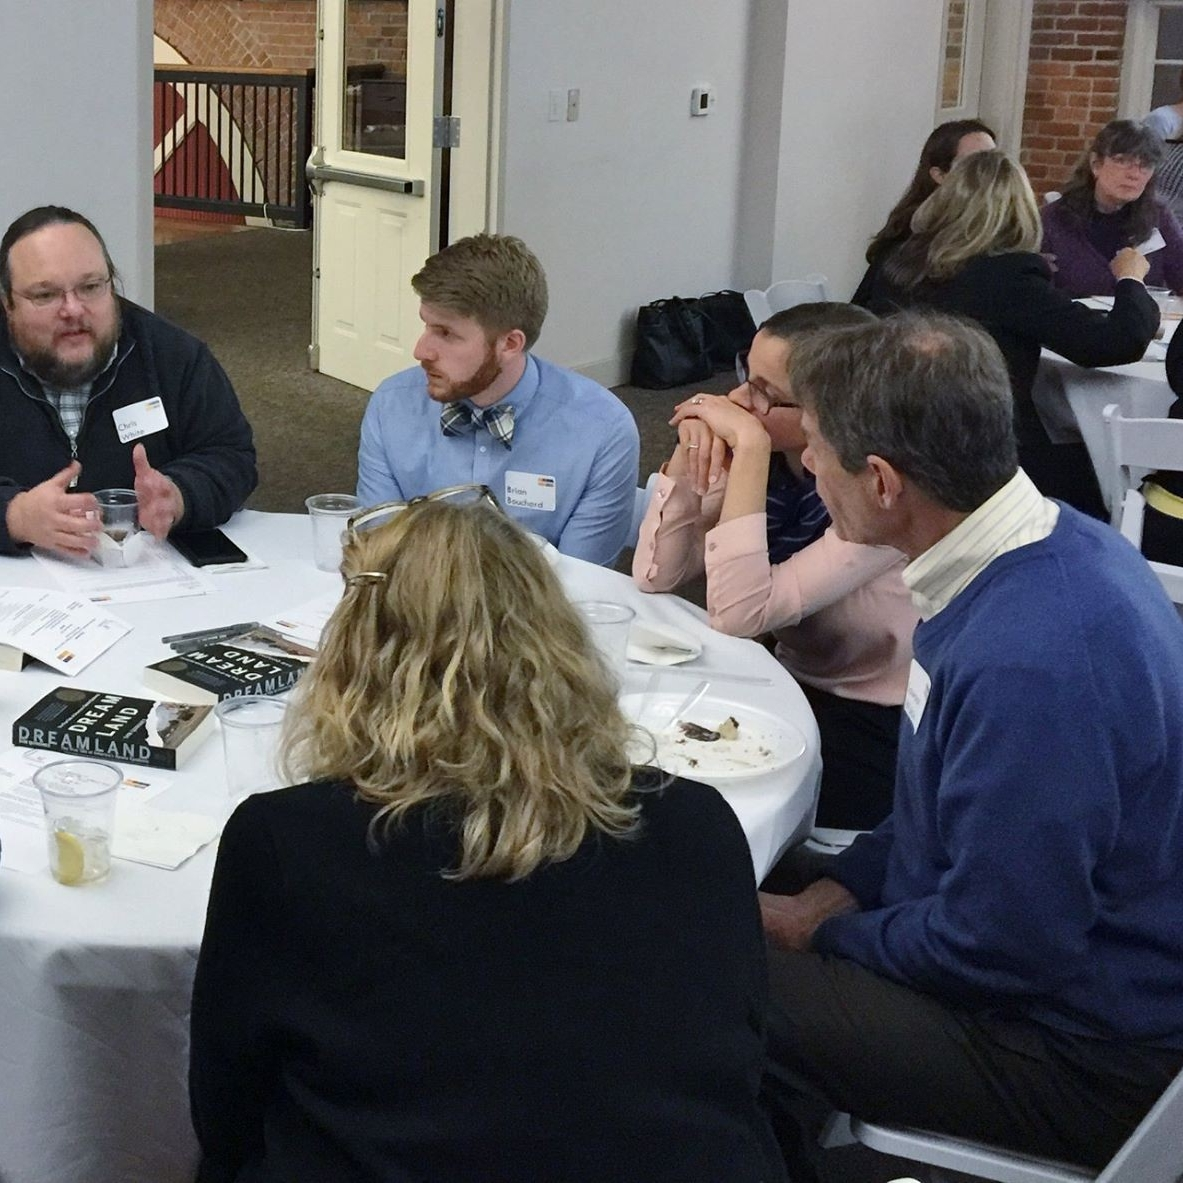 On November 28, over 50 regional physicians, nurse practitioners, pharmacists, social workers, residents and physician assistants gathered to discuss the opioid epidemic, how it has touched their lives, and what actionable steps can be taken in their practice and communities to move toward a solution.